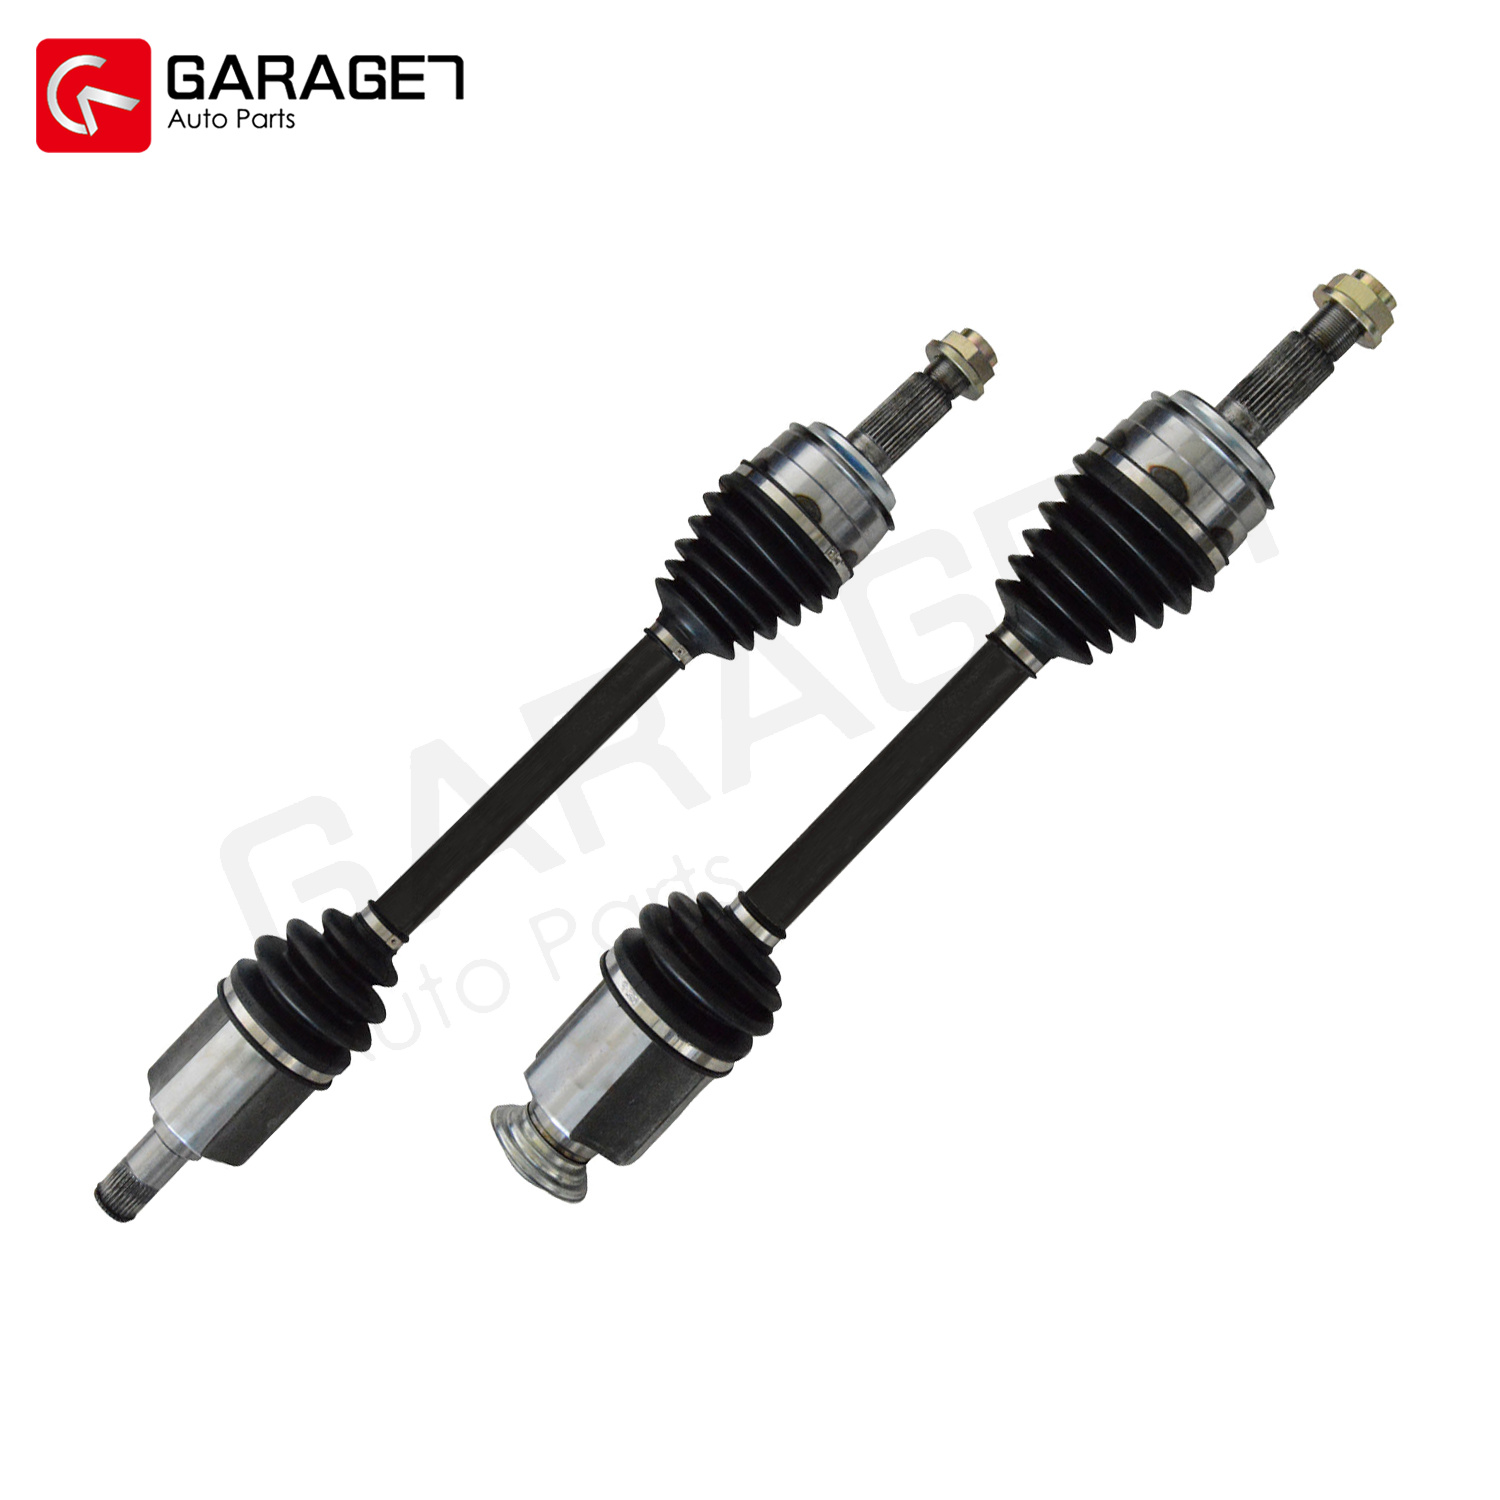 Automatic Transmission Front Pair CV Axle 2 PCS For 1990-1993 HONDA ACCORD